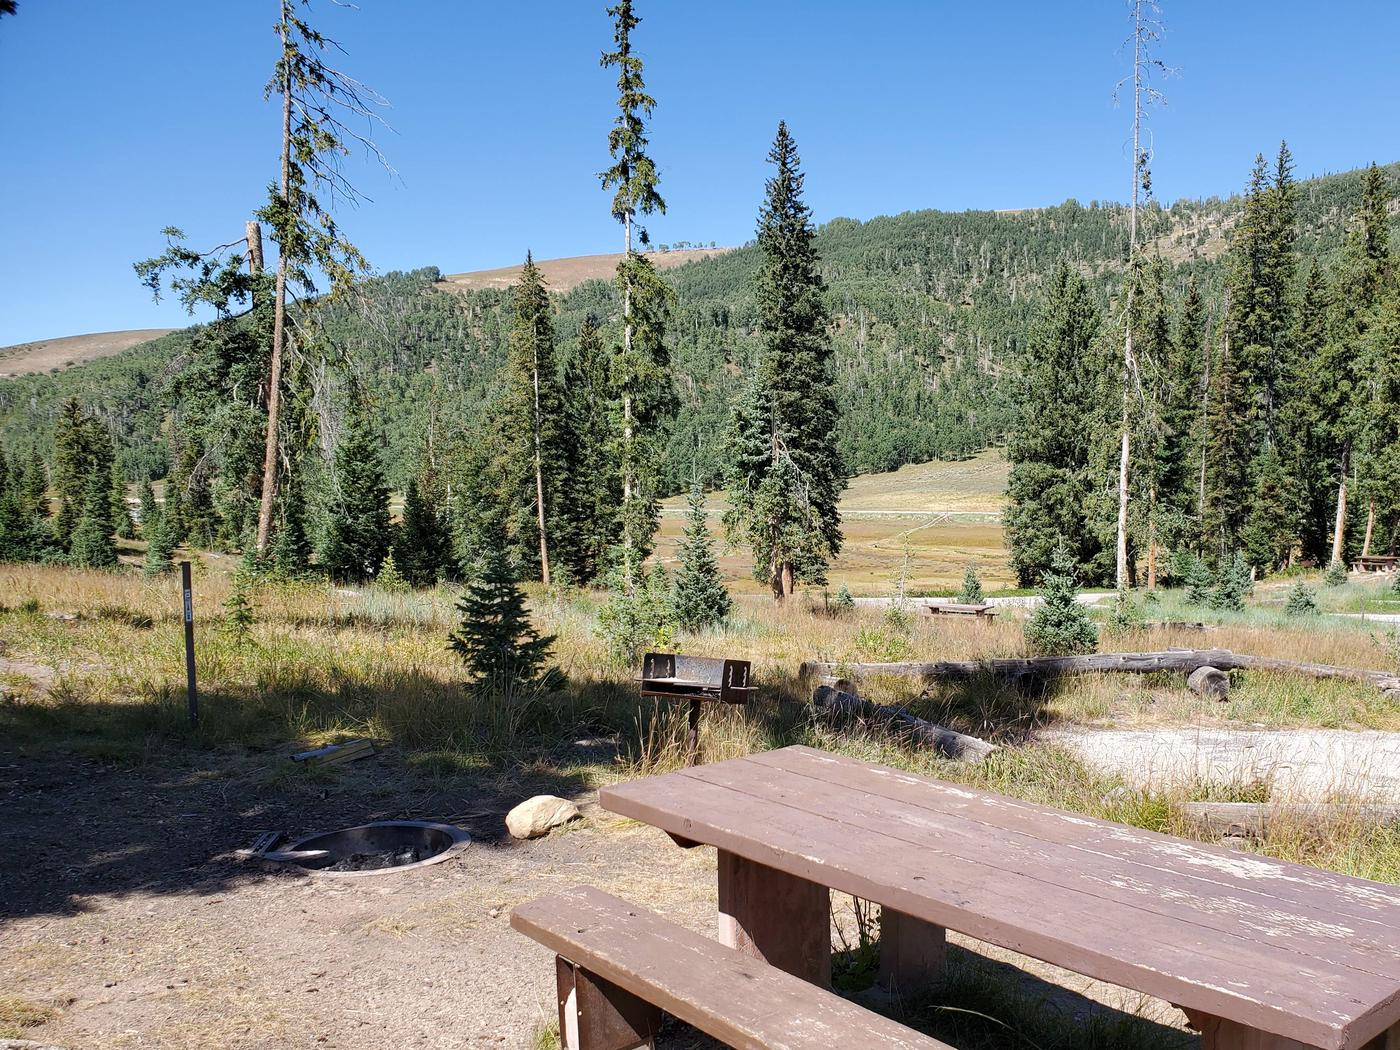 Flat Canyon Campground Site #5